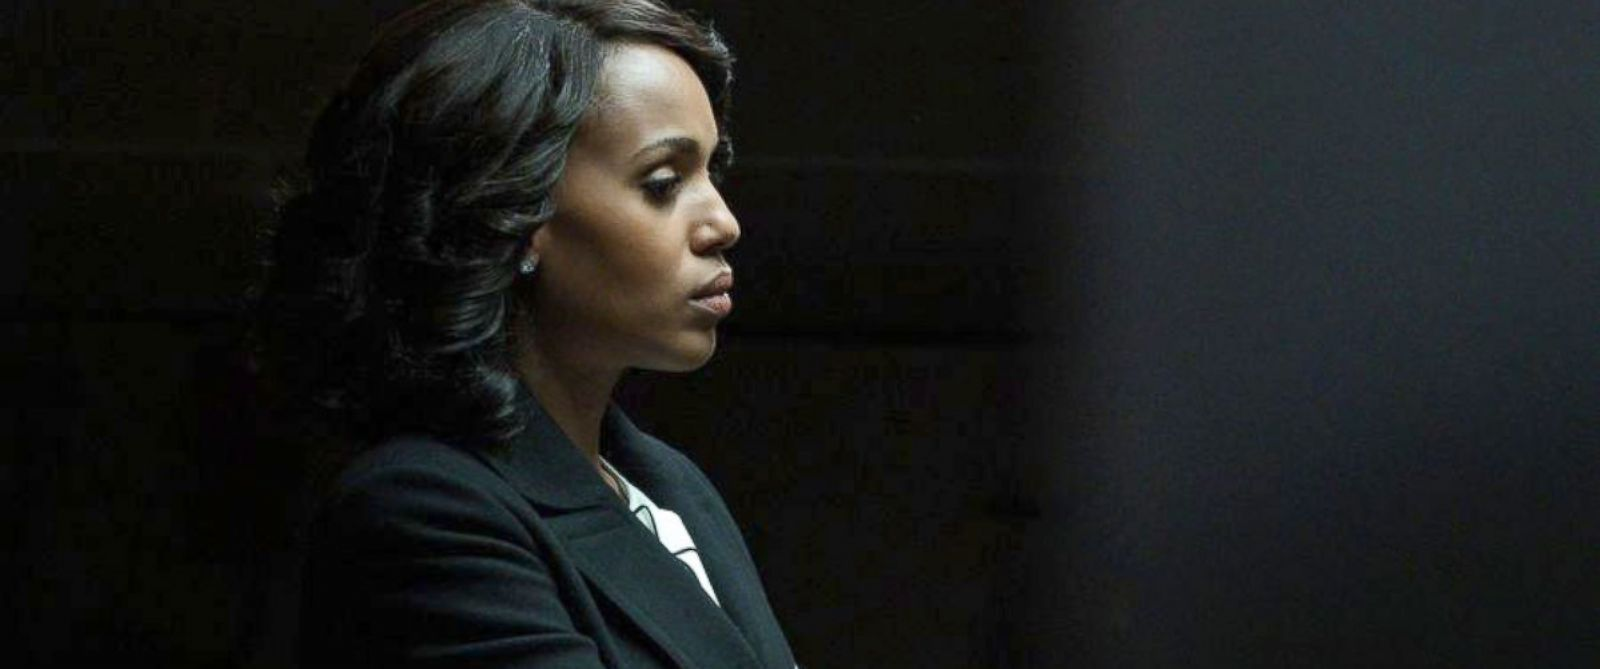 ABC-Kerry-Washington-Scandal-MEM-170516_12x5_1600_1495023989448.jpg